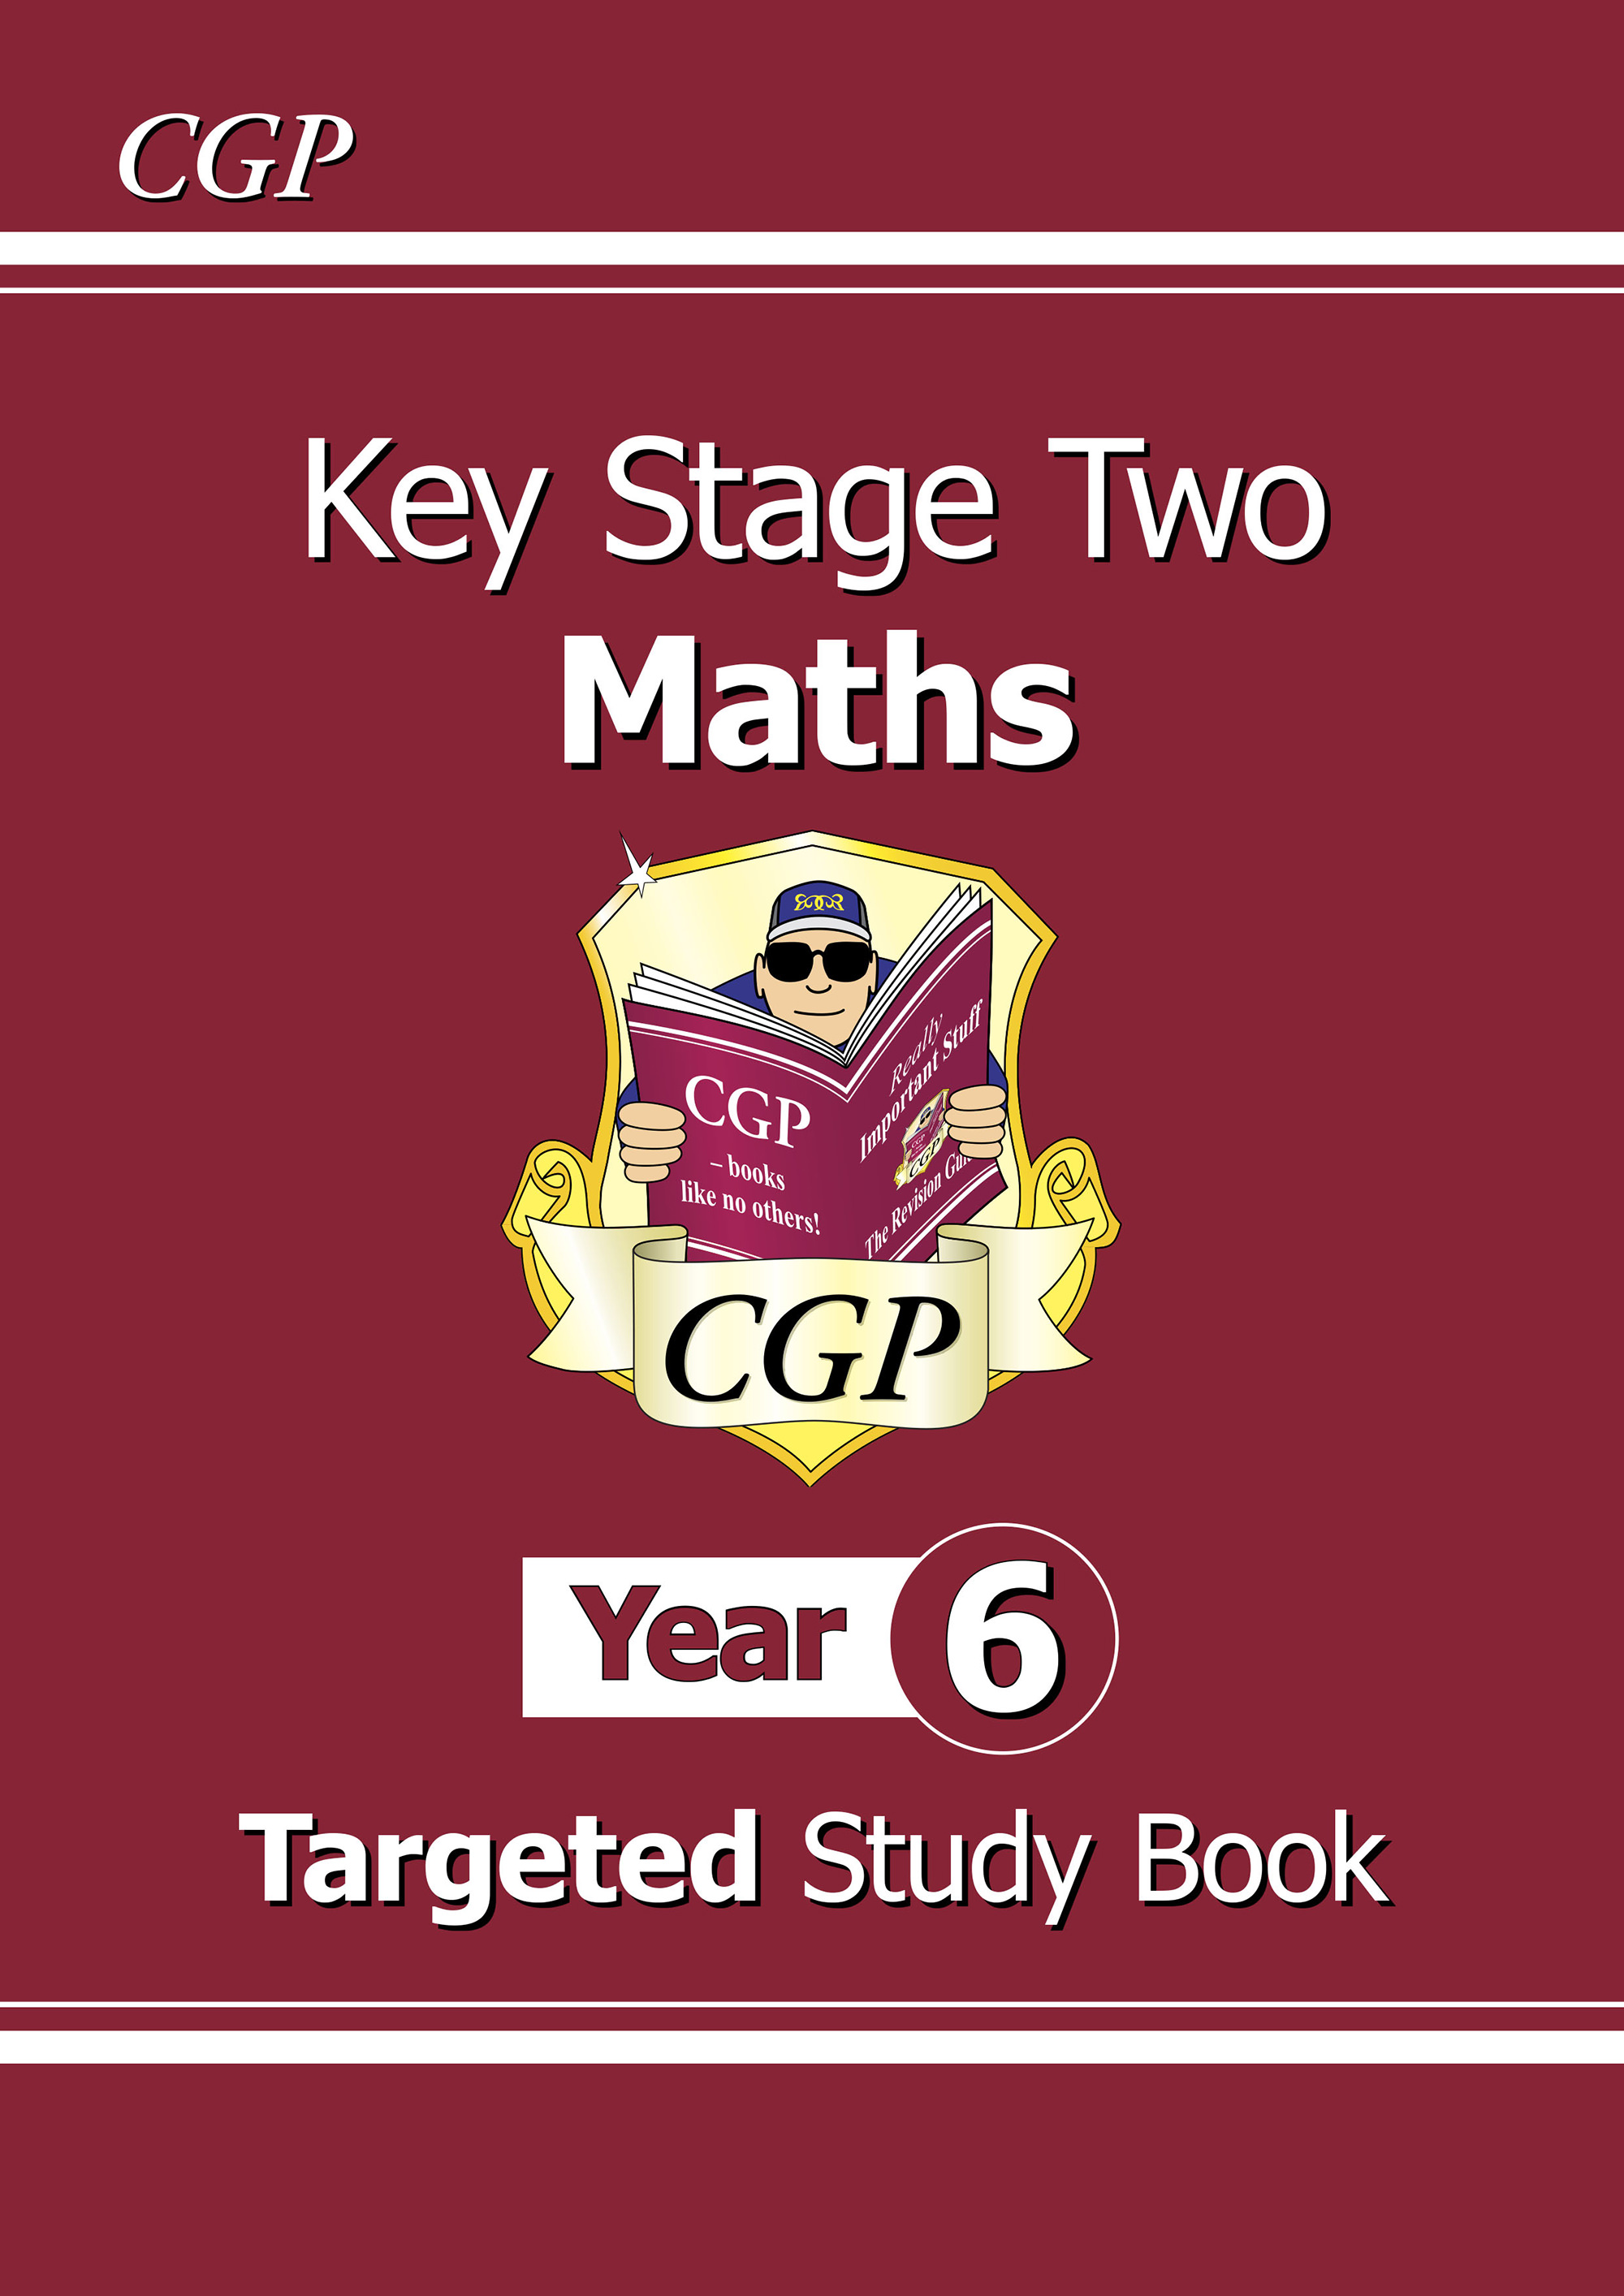 M6R23D - KS2 Maths Targeted Study Book - Year 6 Online Edition